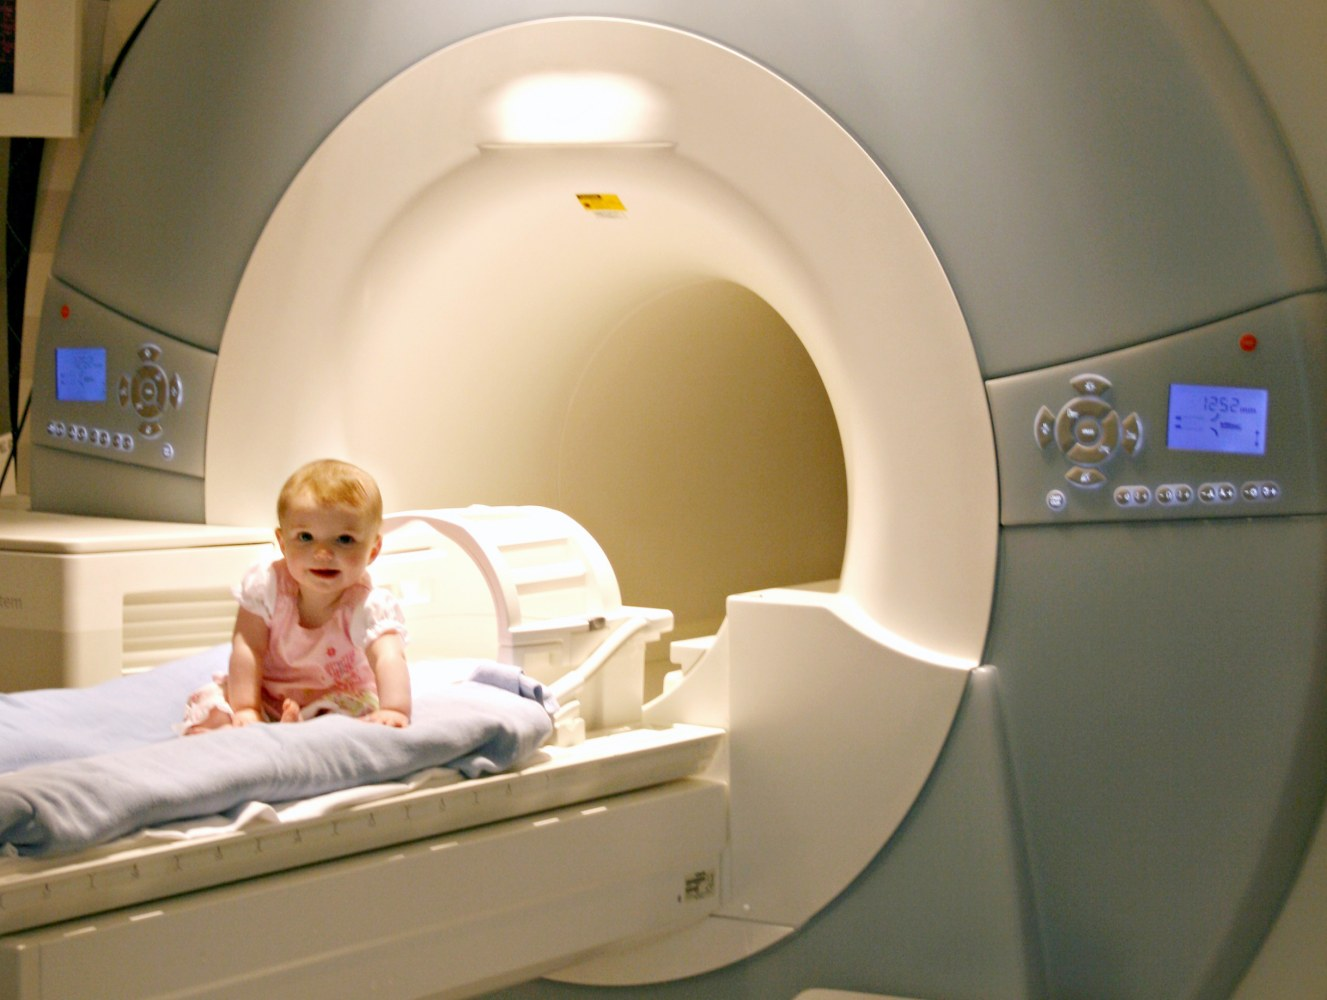 Brain scans show potential to diagnose autism in infancy